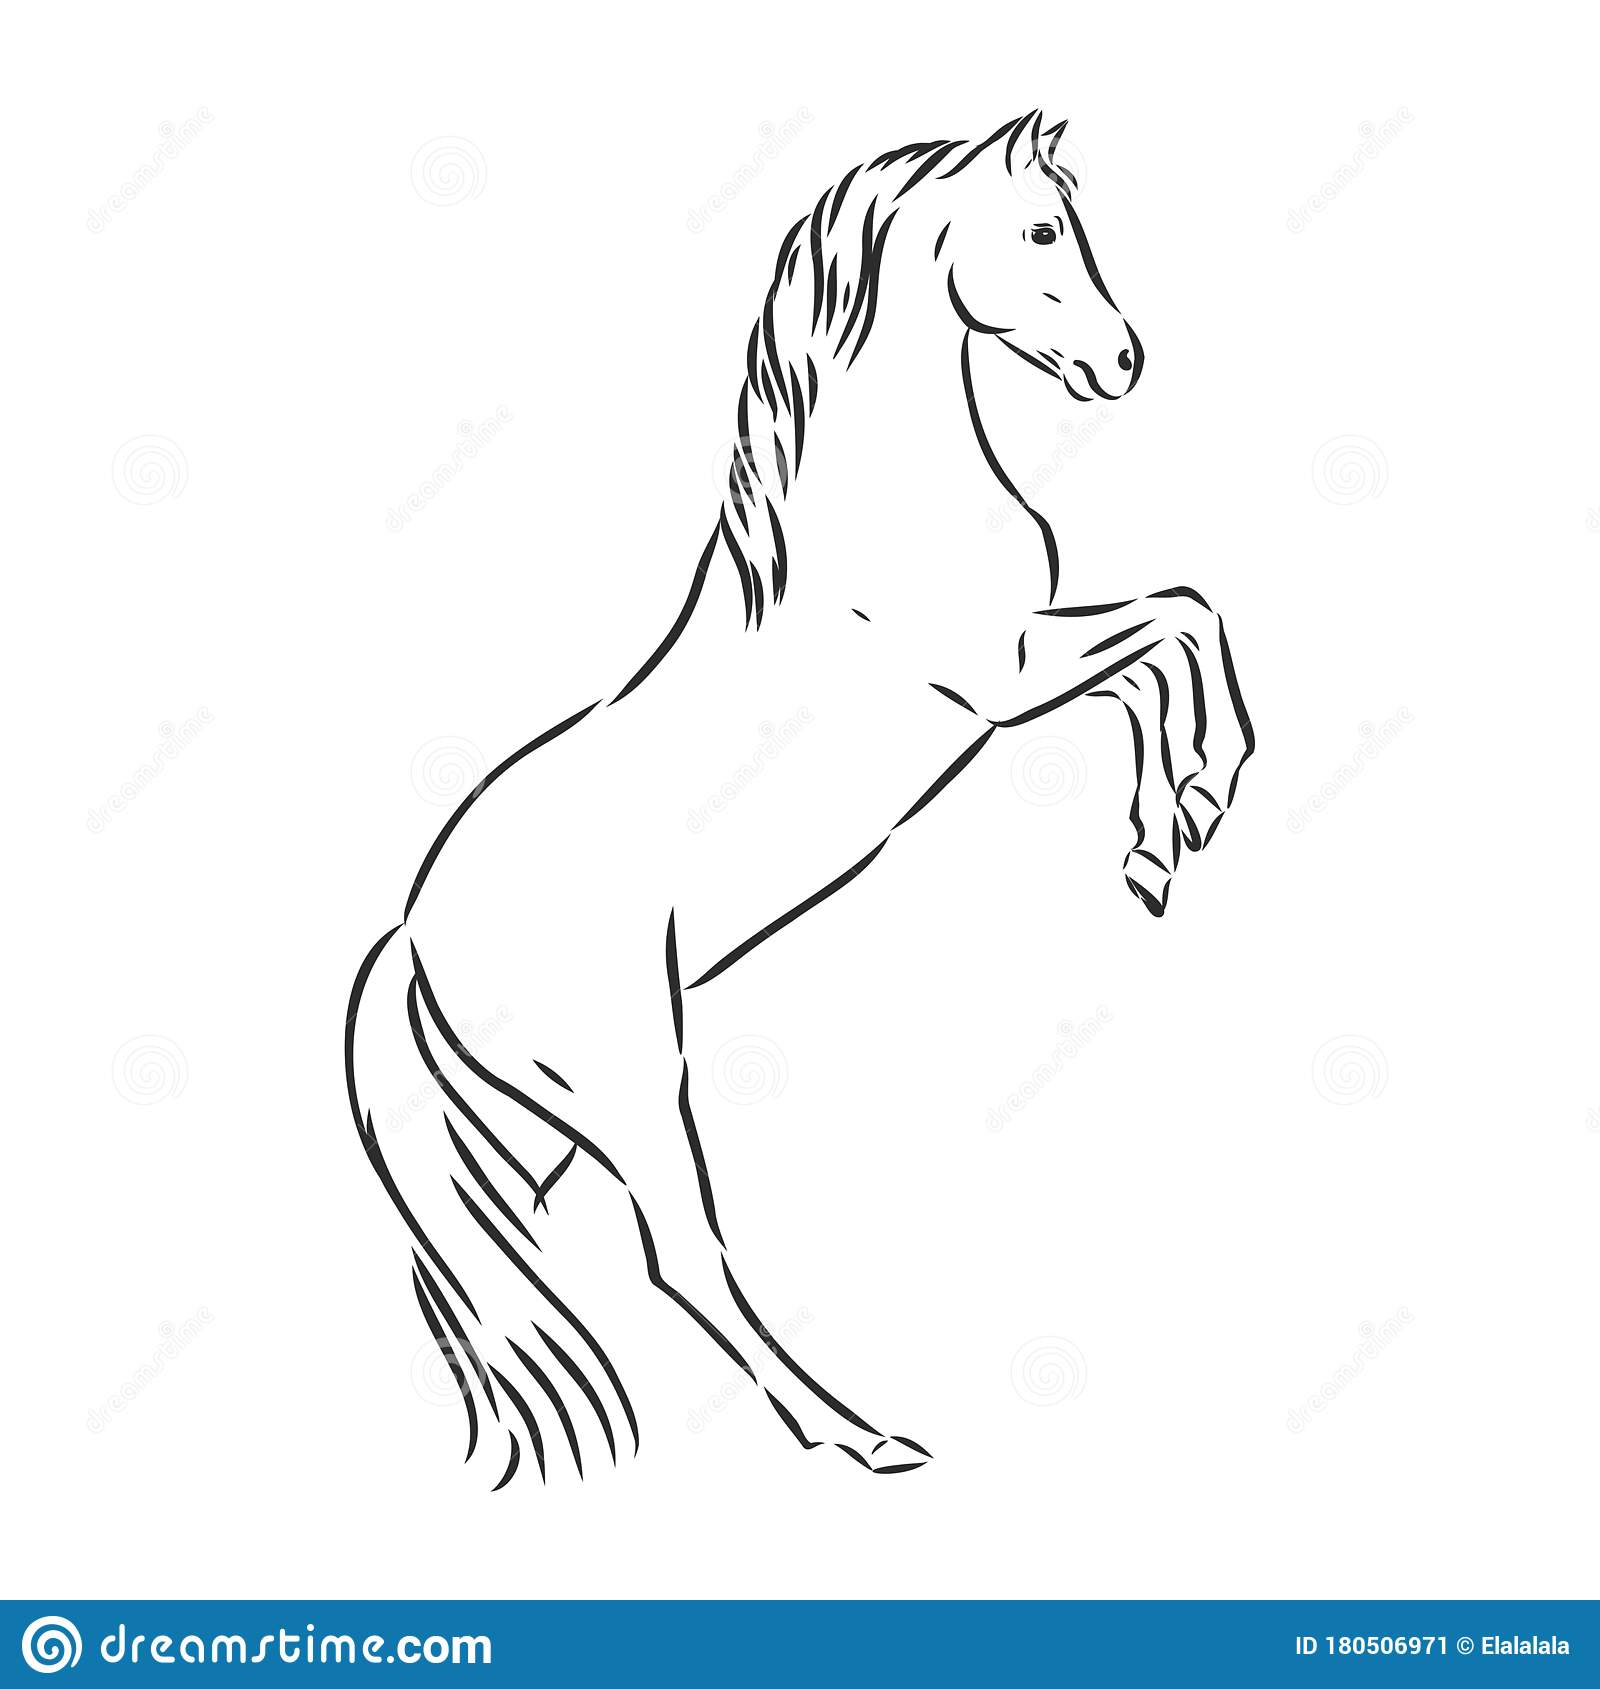 Running Horse Vector Illustration Black And White Outline Beautiful Horse Horse Icon Vector Sketch Illustration Stock Illustration Illustration Of Nature Horse 180506971